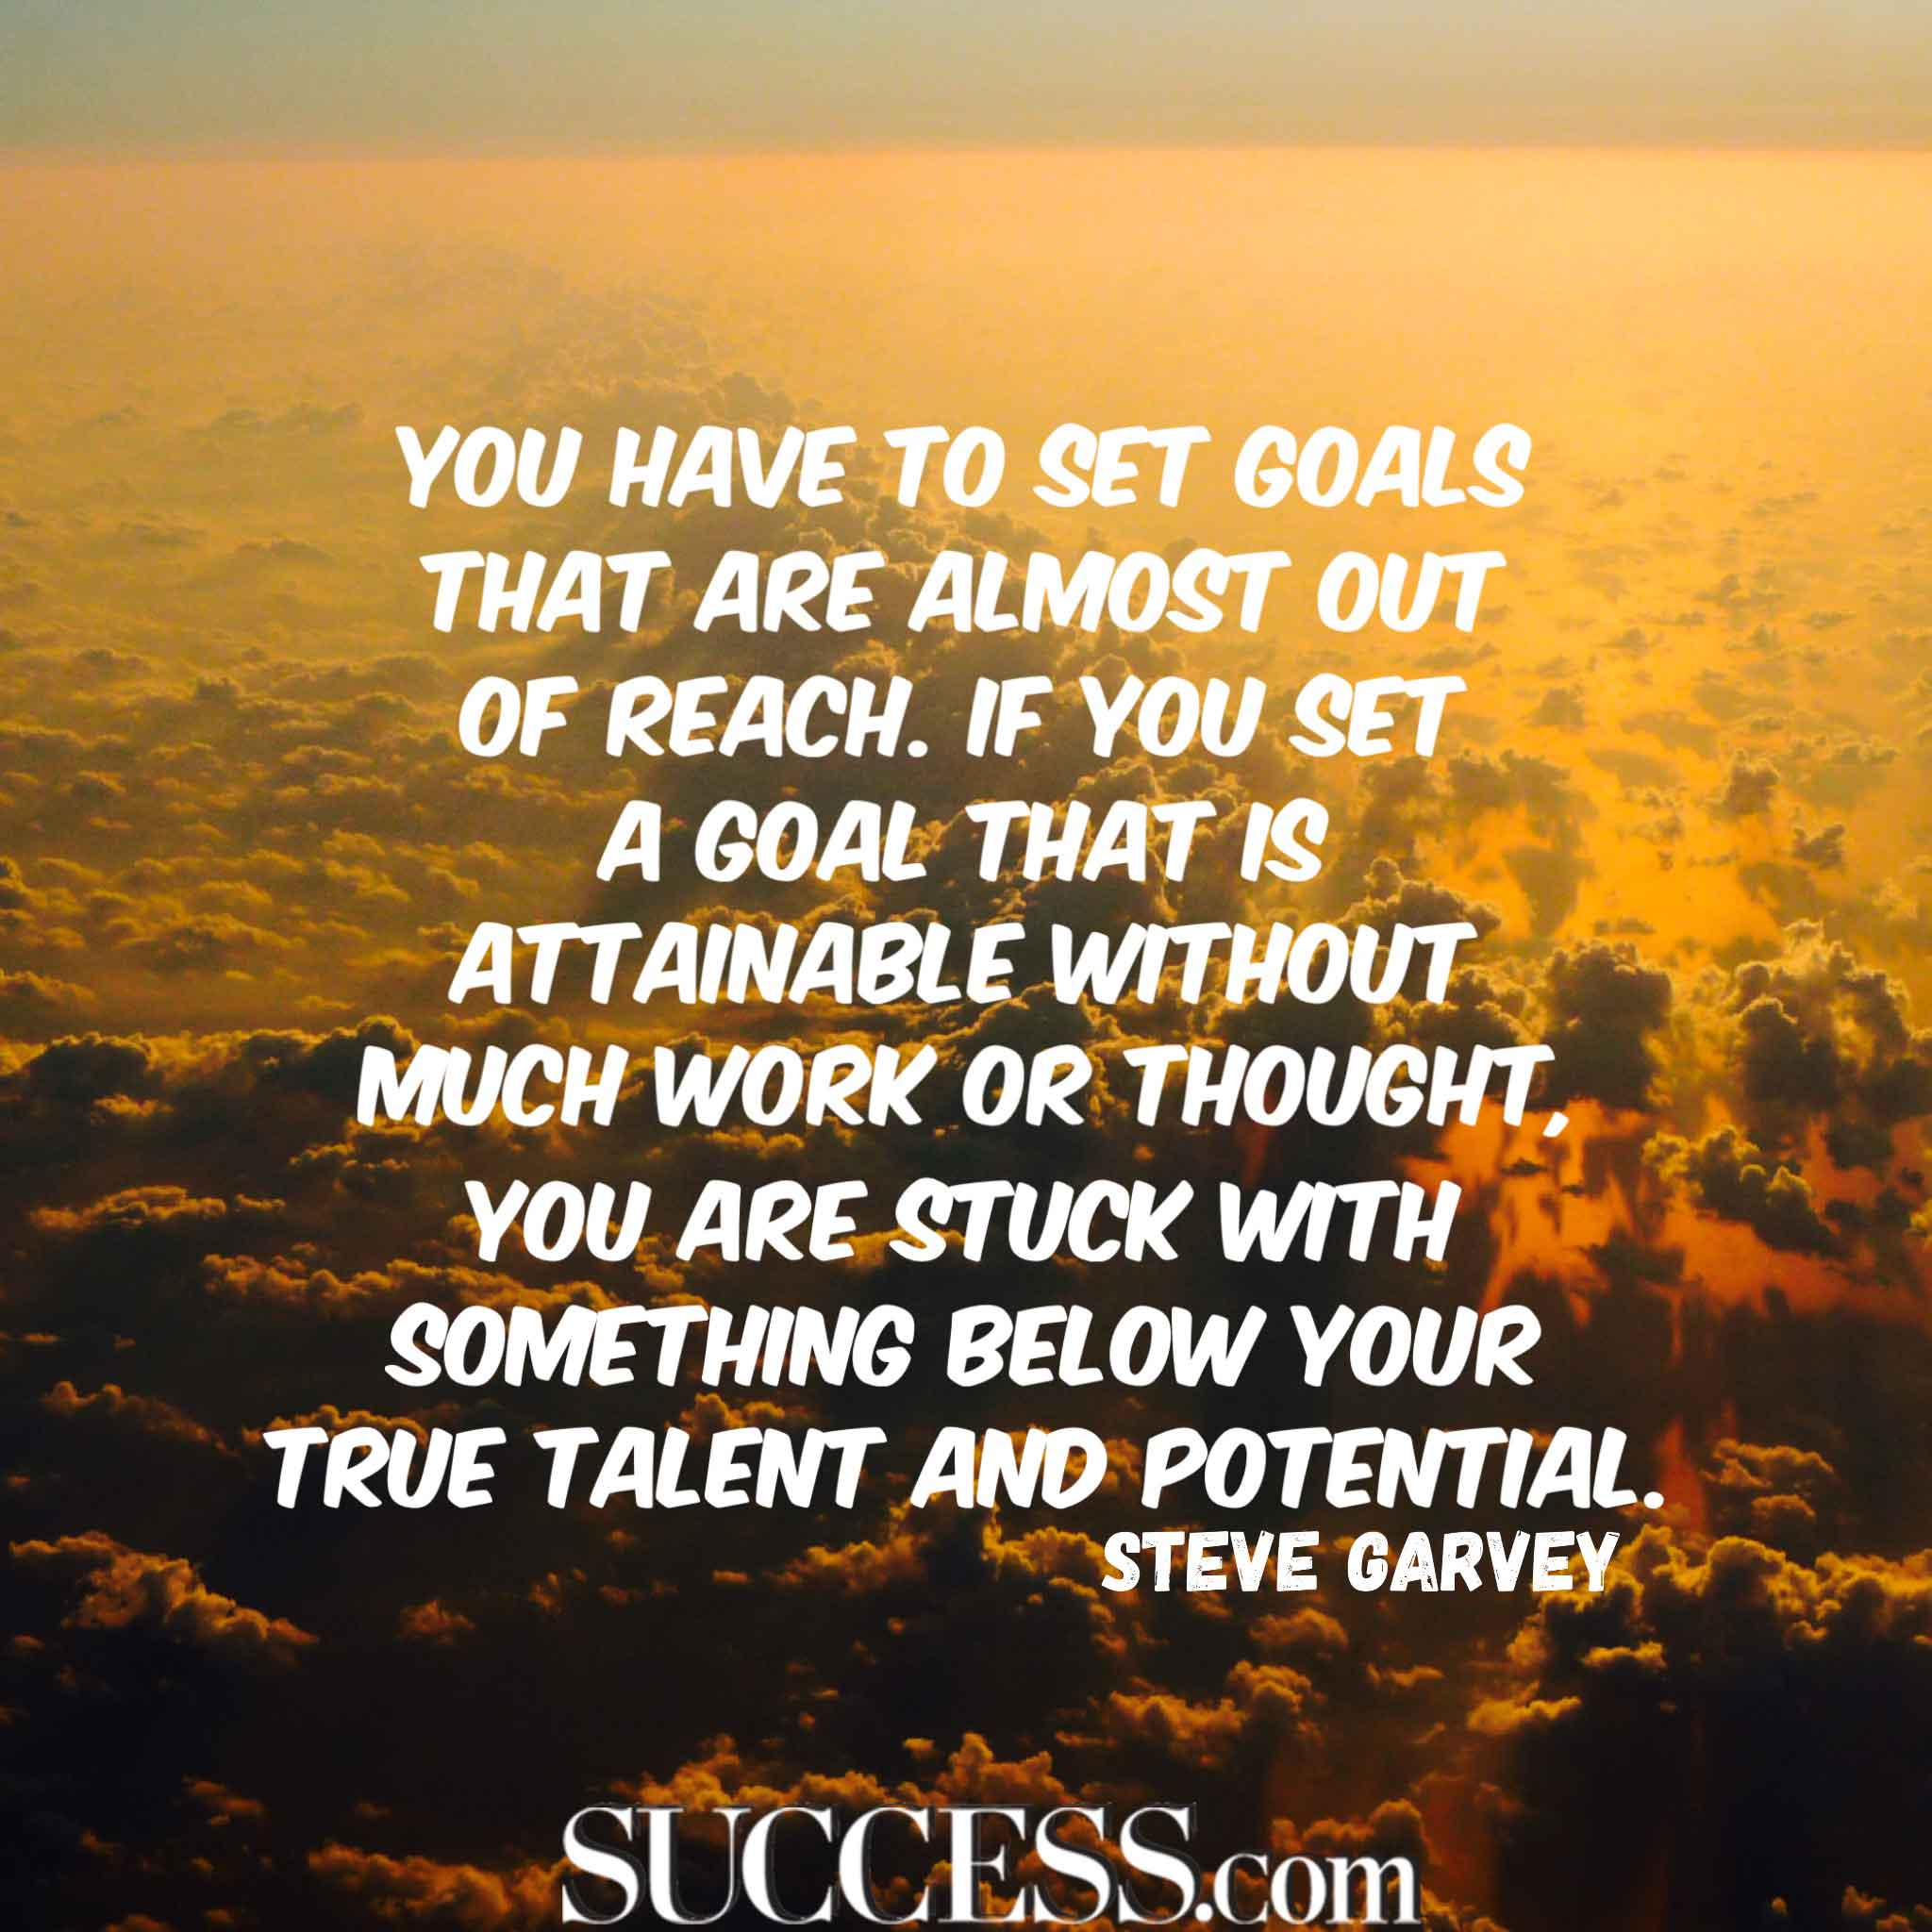 Quote About Success And Goals Facebook thumbnail